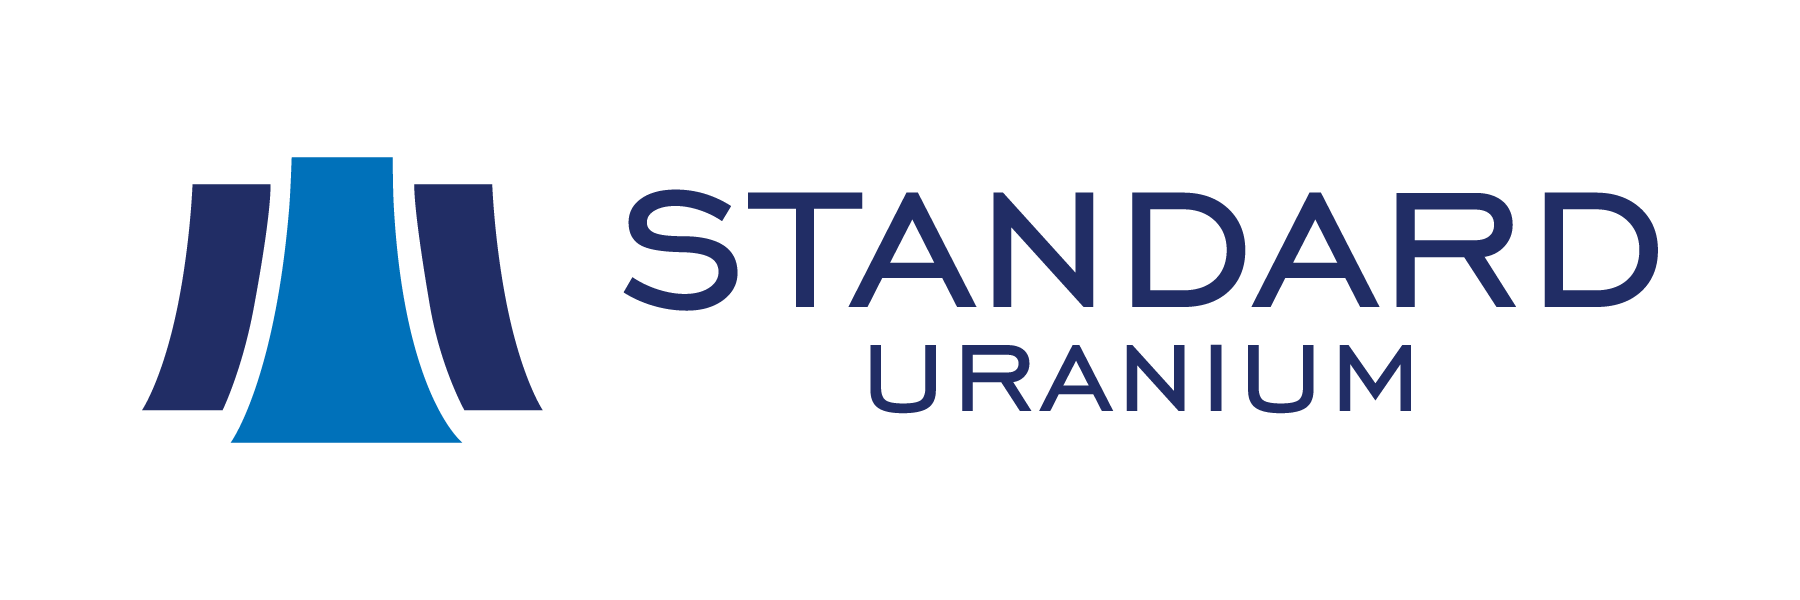 Standard Uranium Stakes Two Uranium Exploration Projects in the Eastern Athabasca Basin